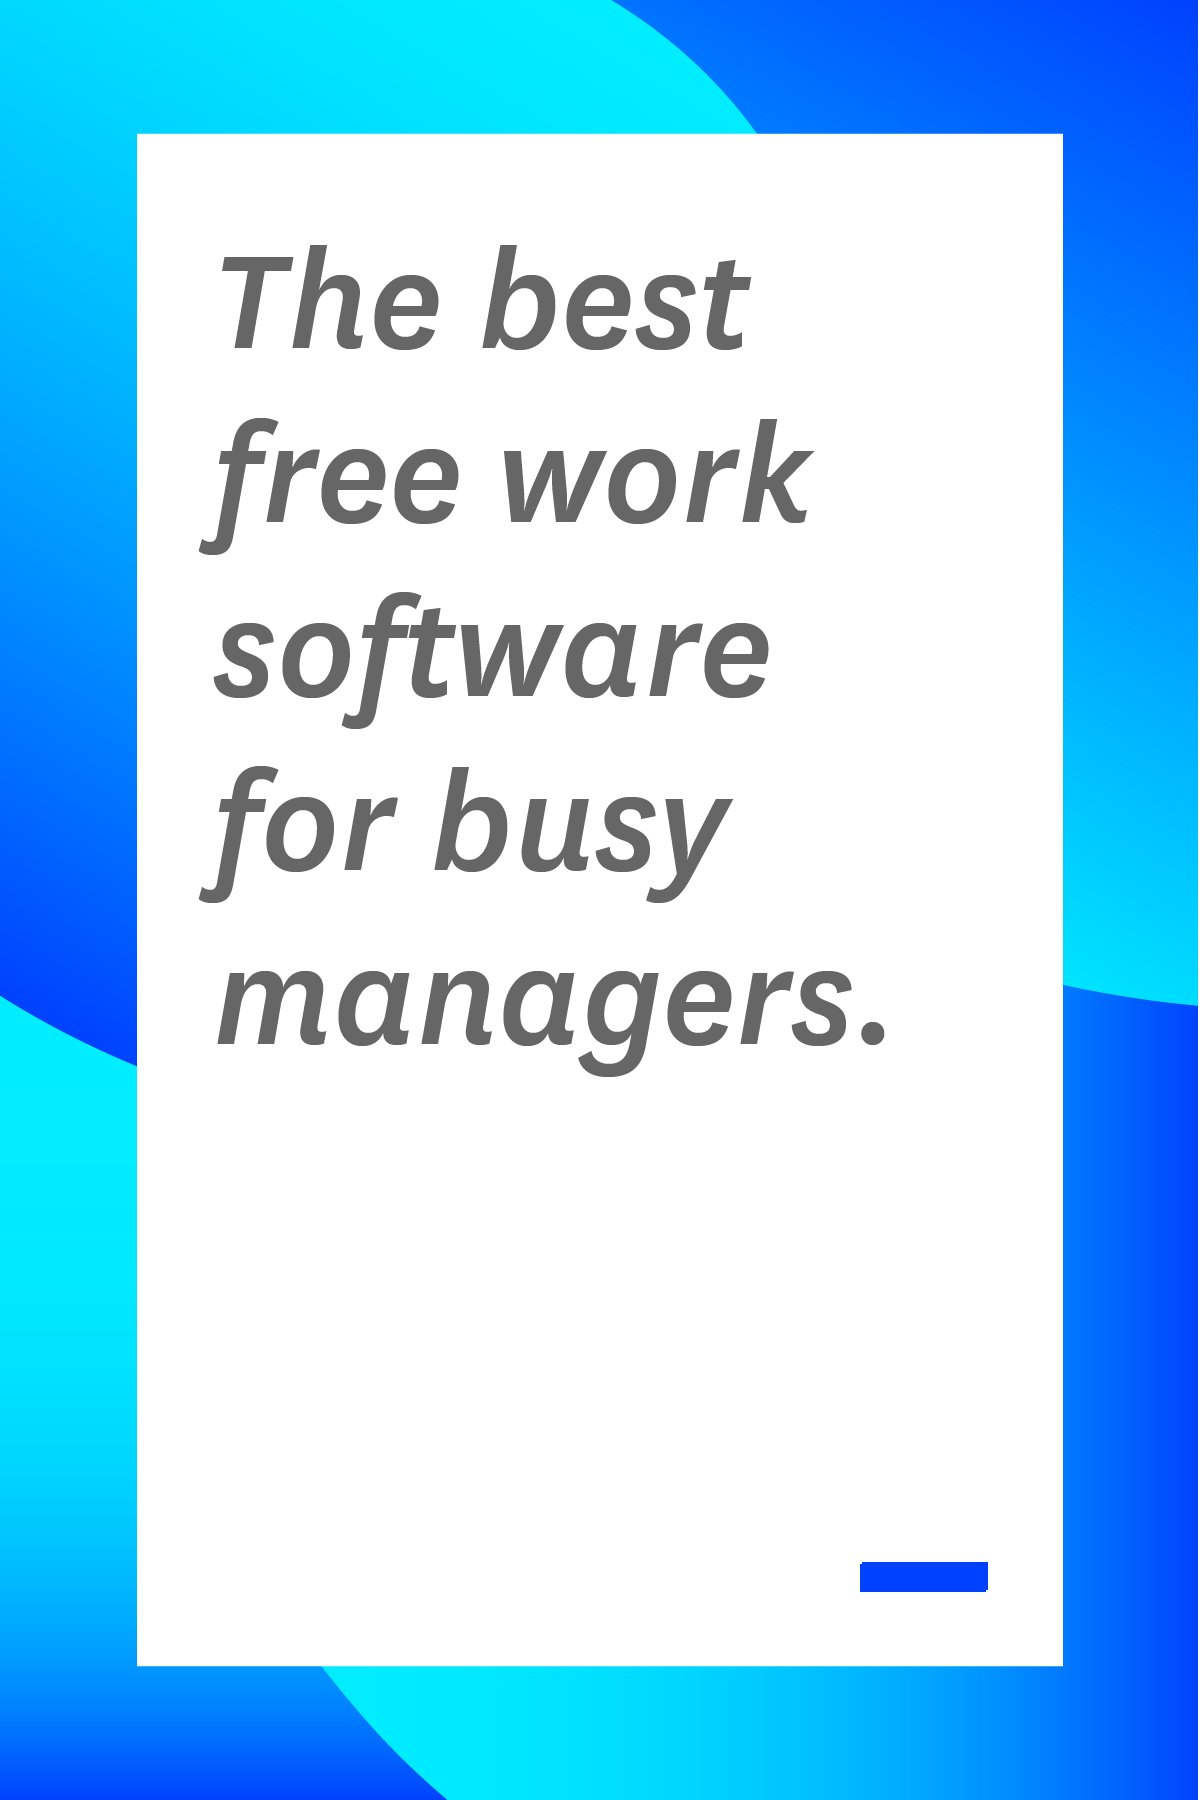 If you're a manager, you've got to worry about managing both your employees and your budget. These free work software options will help you stay organized and save money. #toolsformanagers #managertips